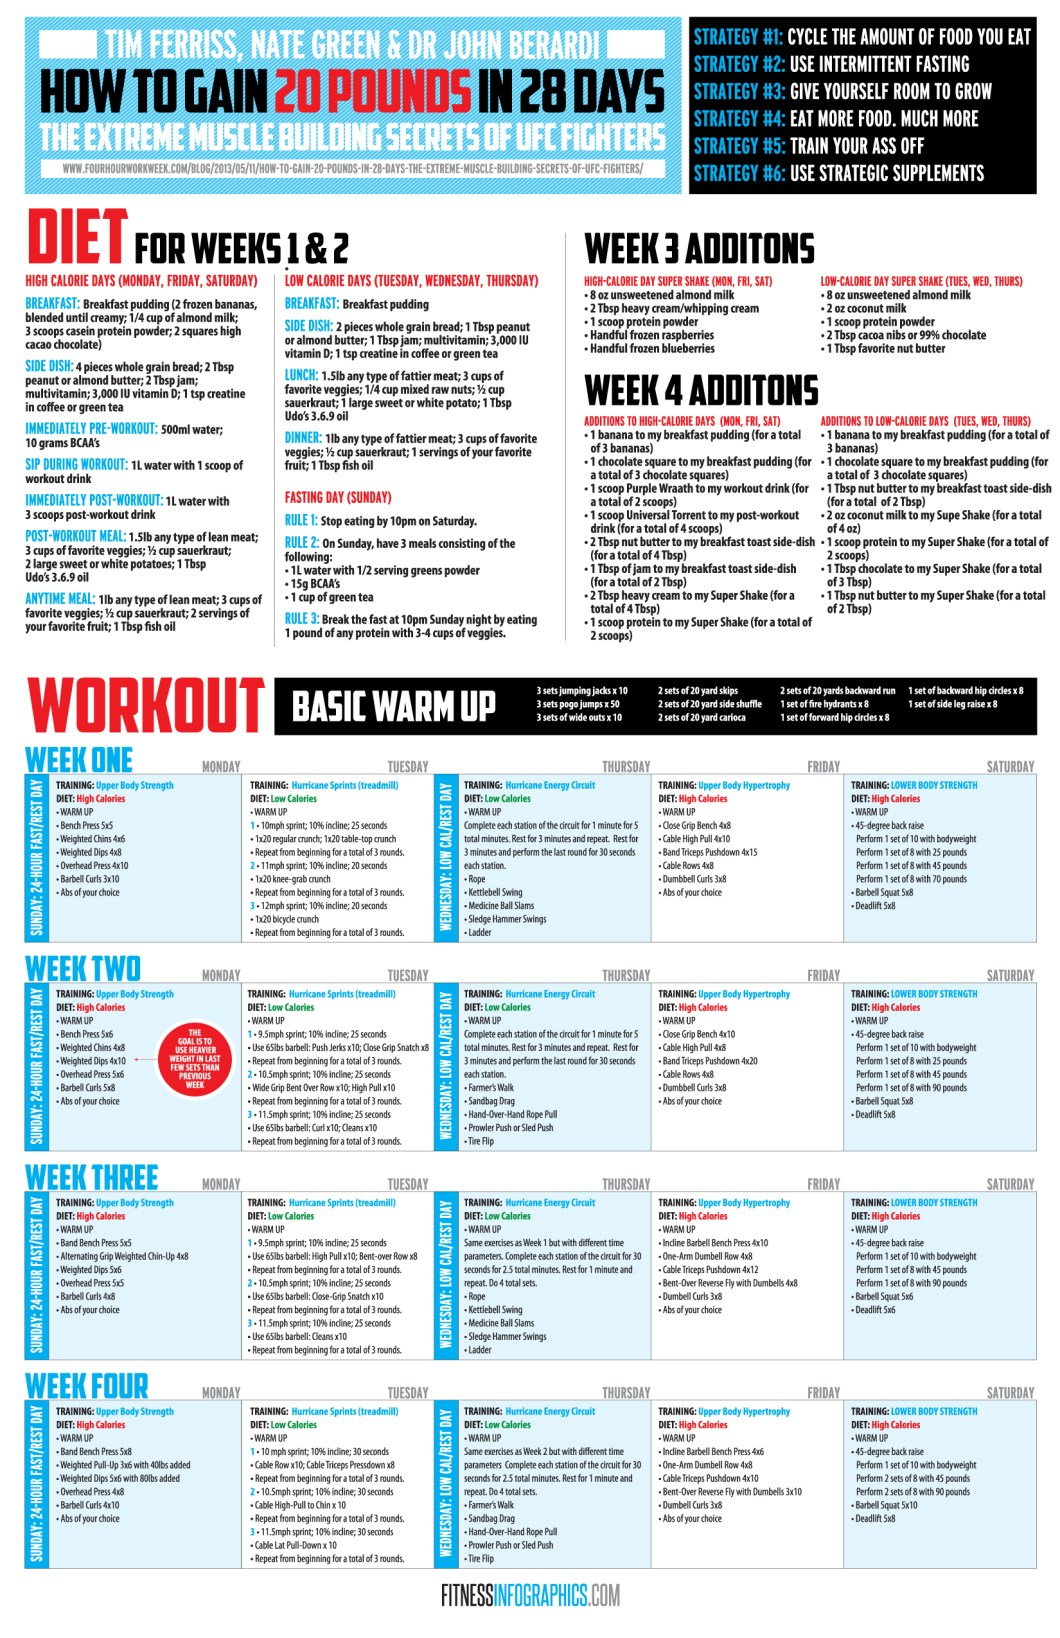 Gain 20 Pounds in 28 Days - Infographic